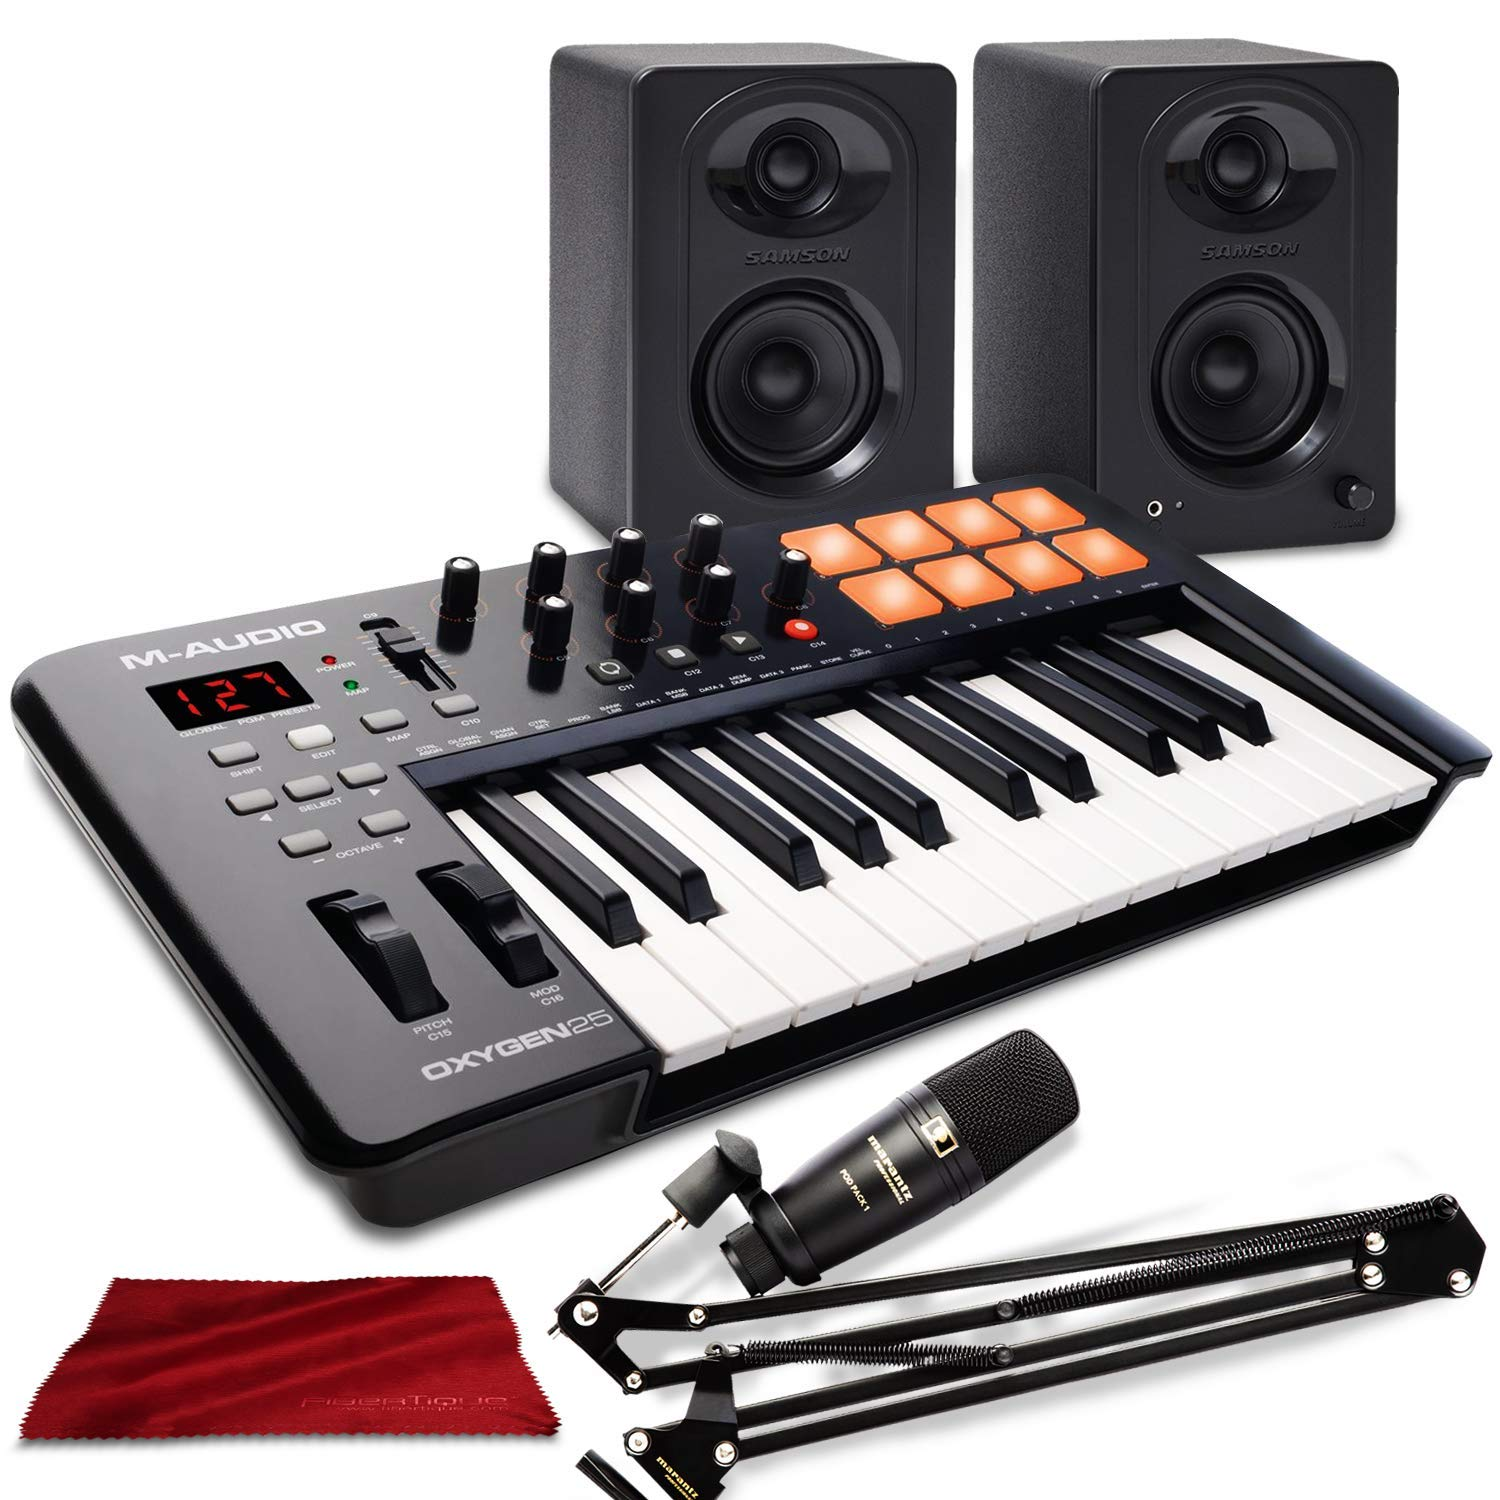 M-Audio Oxygen 25 MK IV USB Pad/MIDI Keyboard Controller with Marantz Professional Pod Pack 1 USB Microphone Kit and Deluxe Bundle by Photo Savings